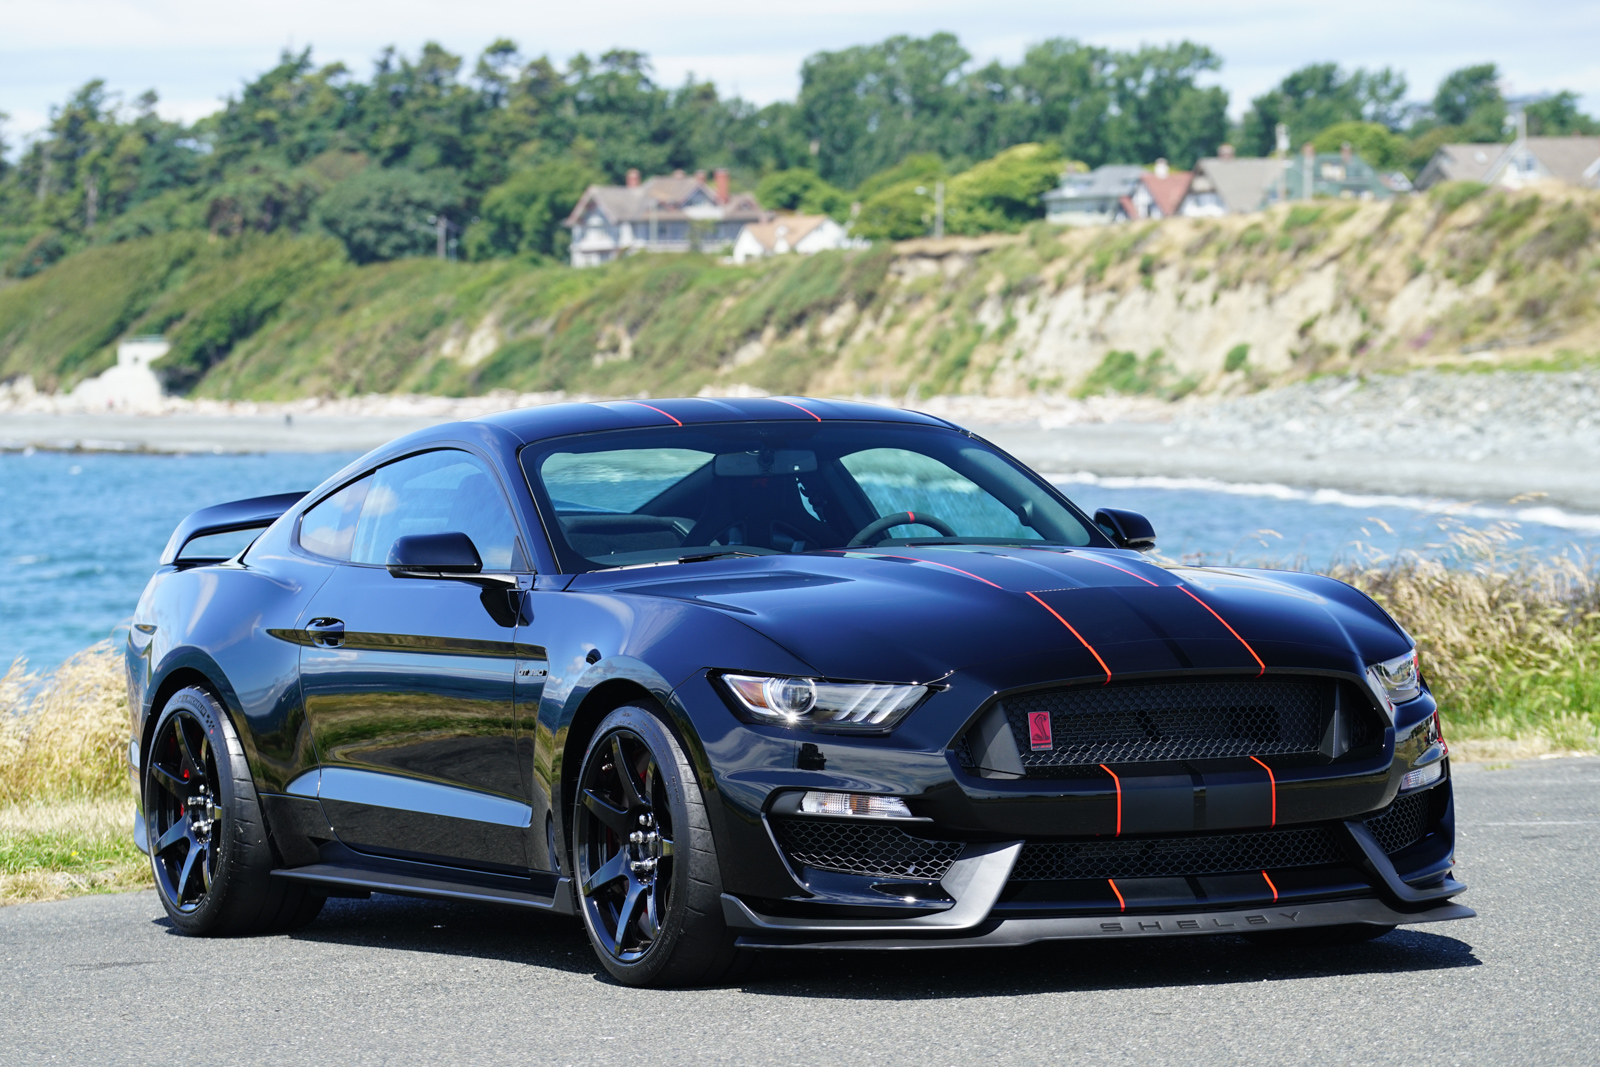 Ford Shelby Gt350r Interior >> 2016 Ford Shelby GT350R Mustang For Sale | Silver Arrow Cars Ltd